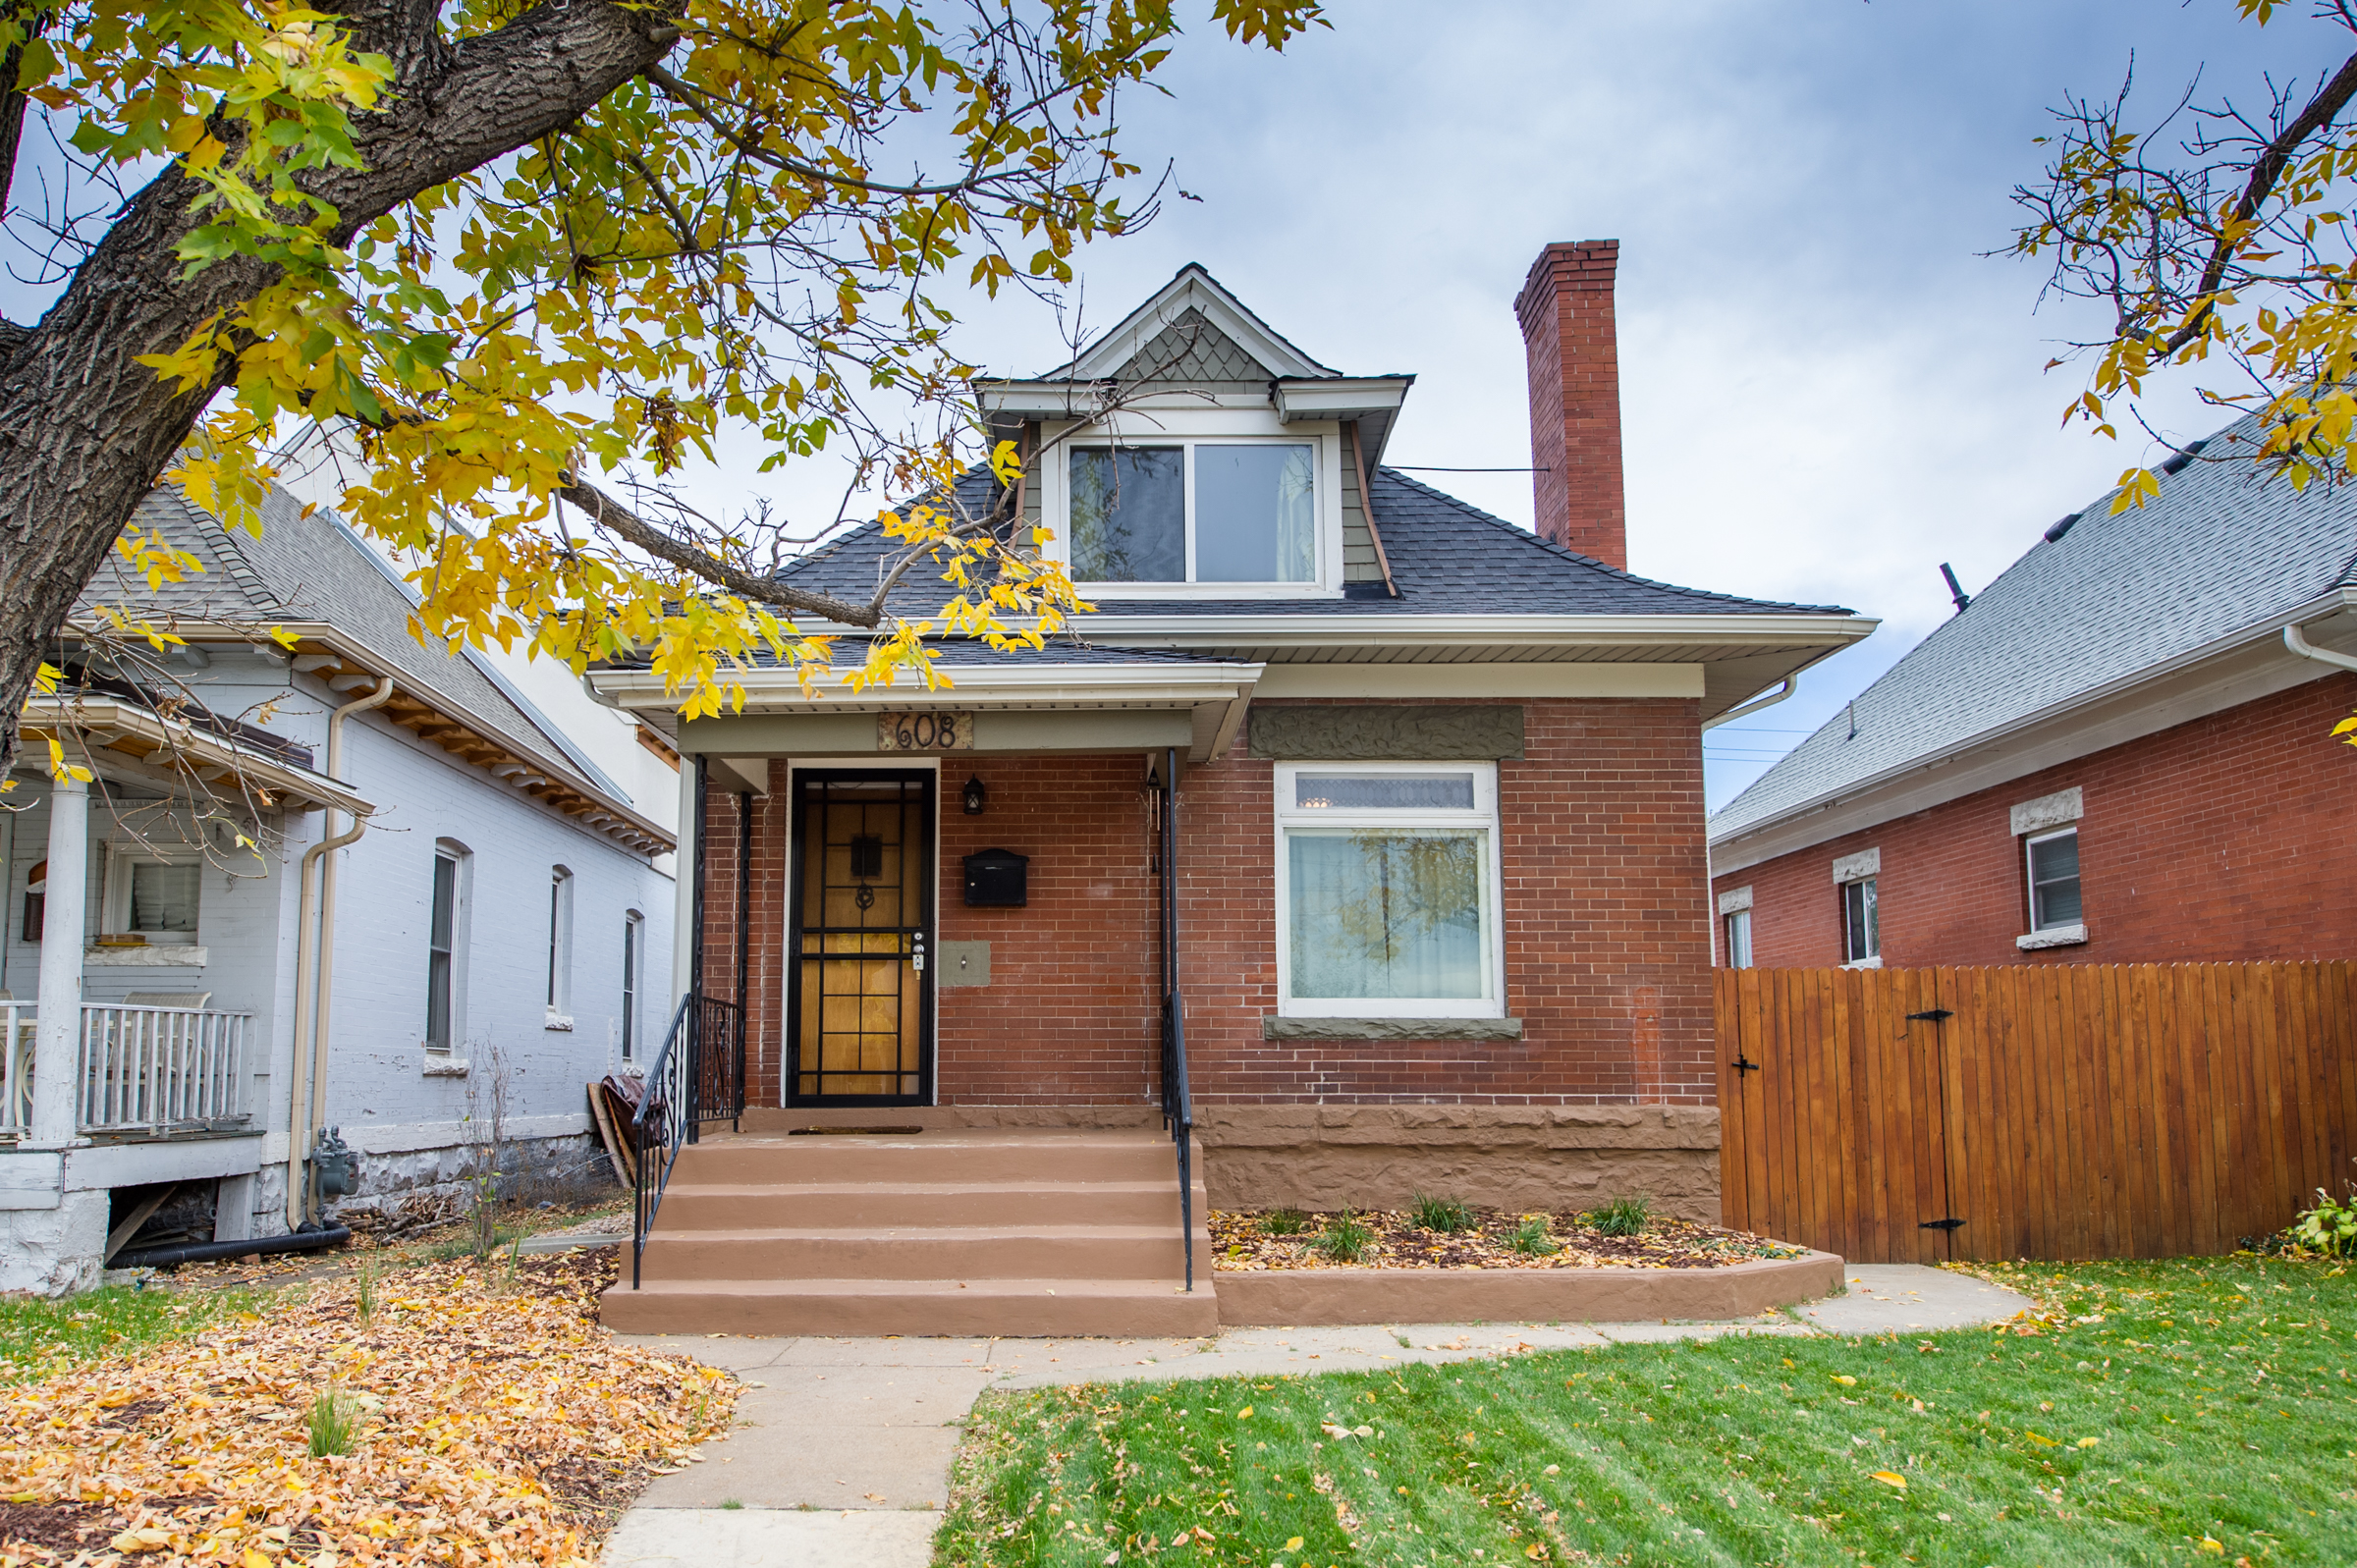 Single Family Home for Sale at Wonderful starter home! 608 South Lincoln Street Washington Park West, Denver, Colorado 80209 United States